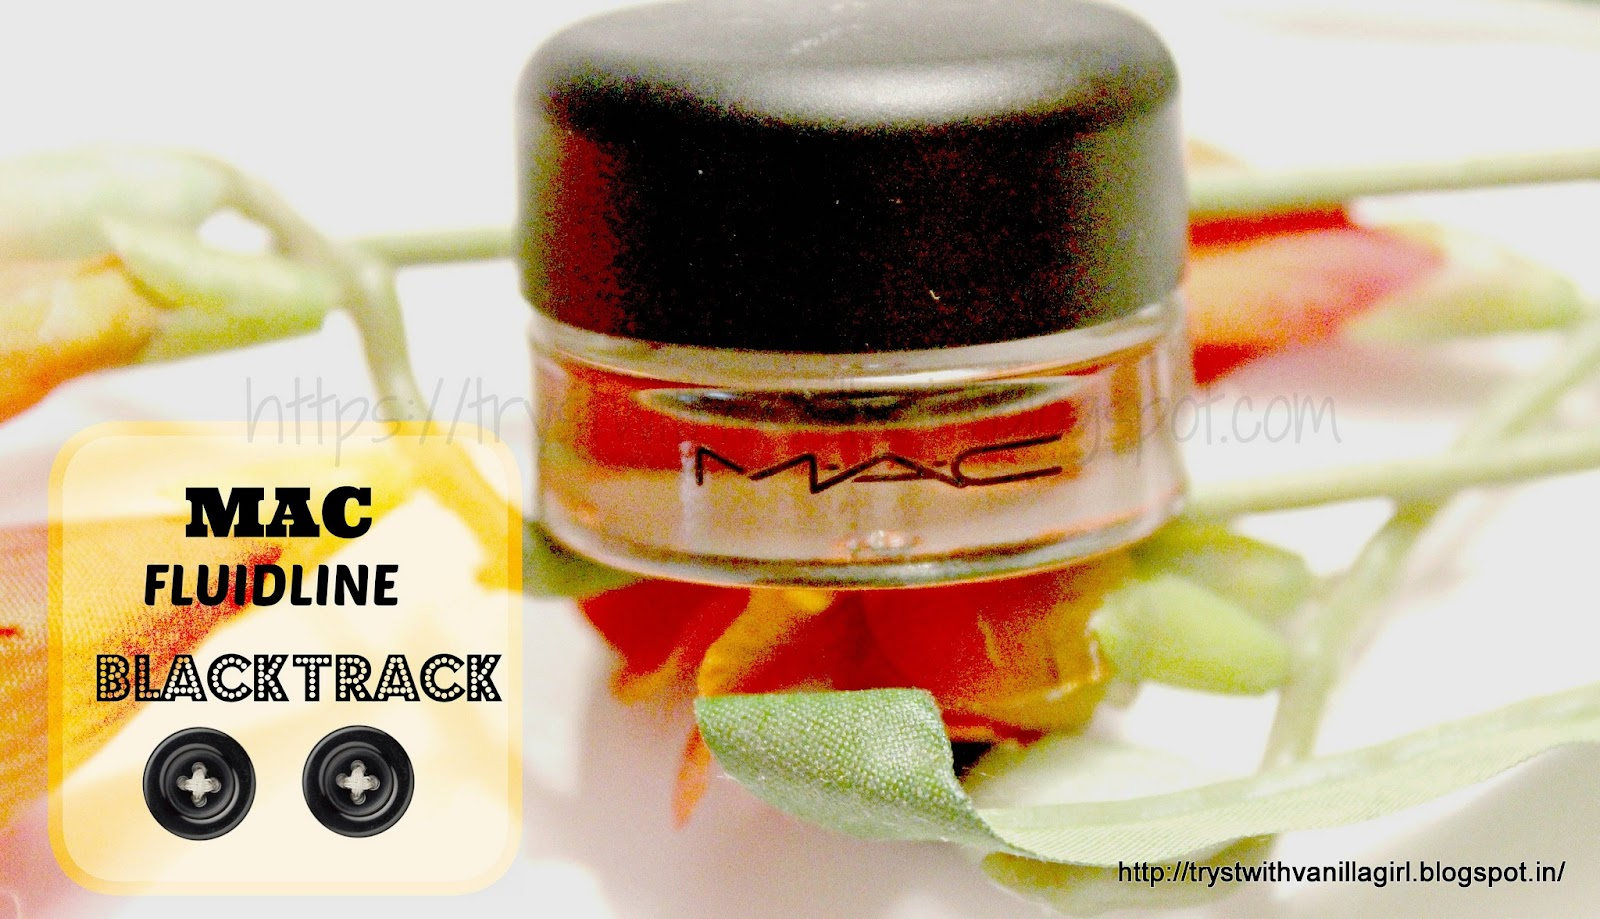 MAC FLUIDLINE BLACKTRACK/GEL LINER:REVIEW:SWATCH :EOTD